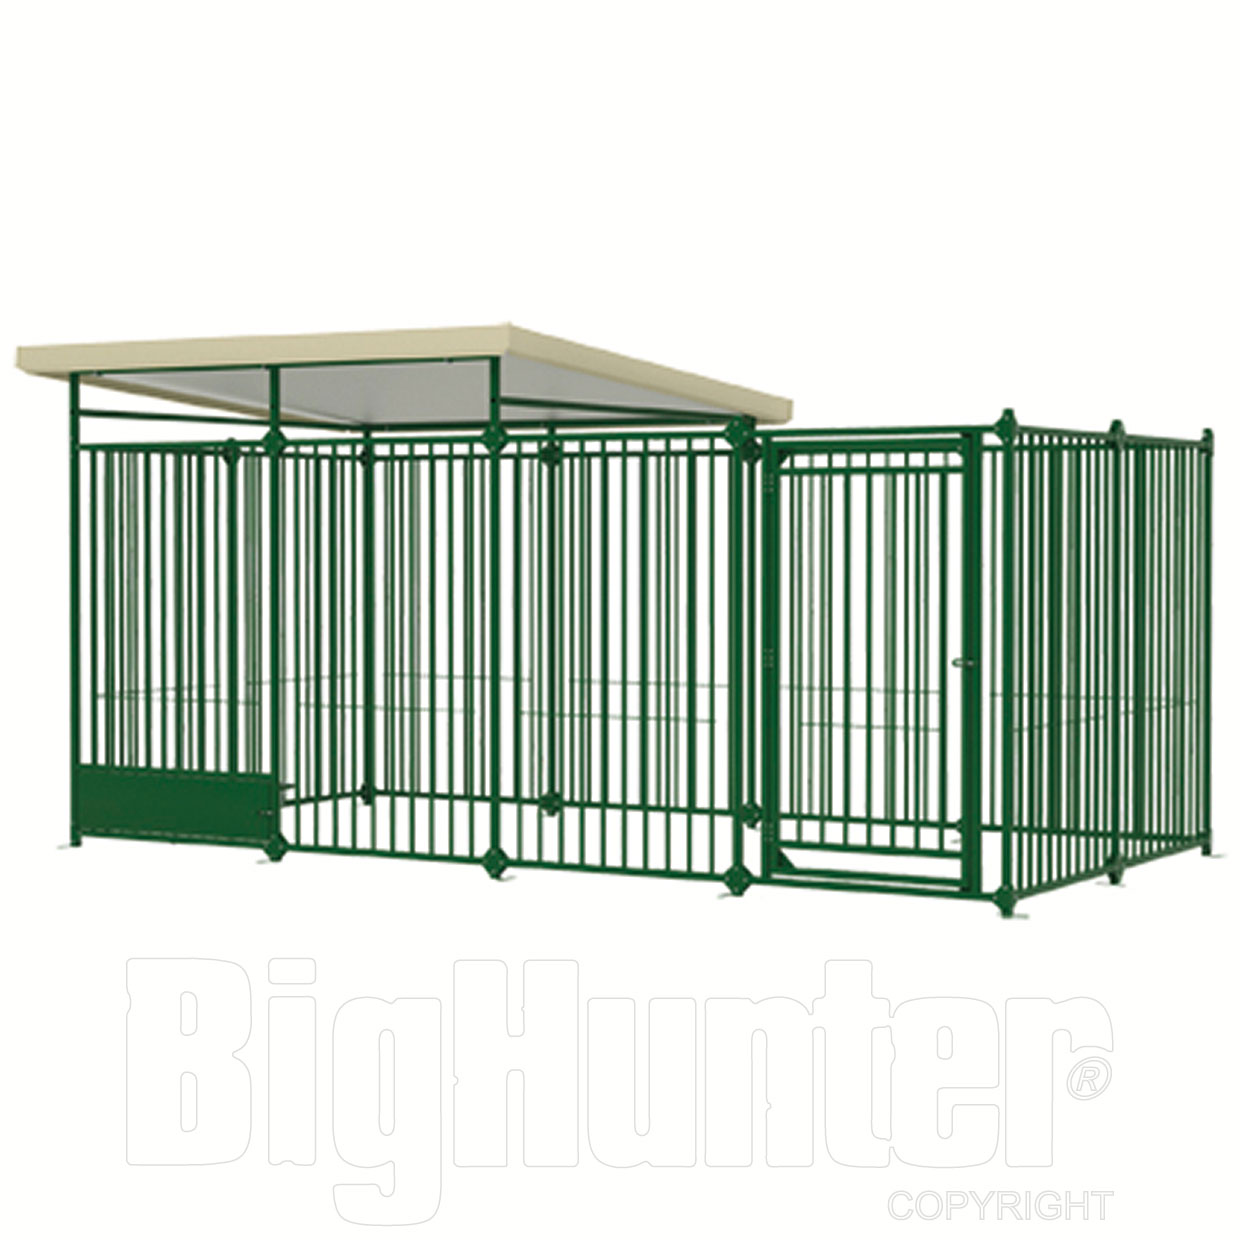 Ferplast recinto per cani modulare dog pen 4x2 - Recinto mobile per cani ...